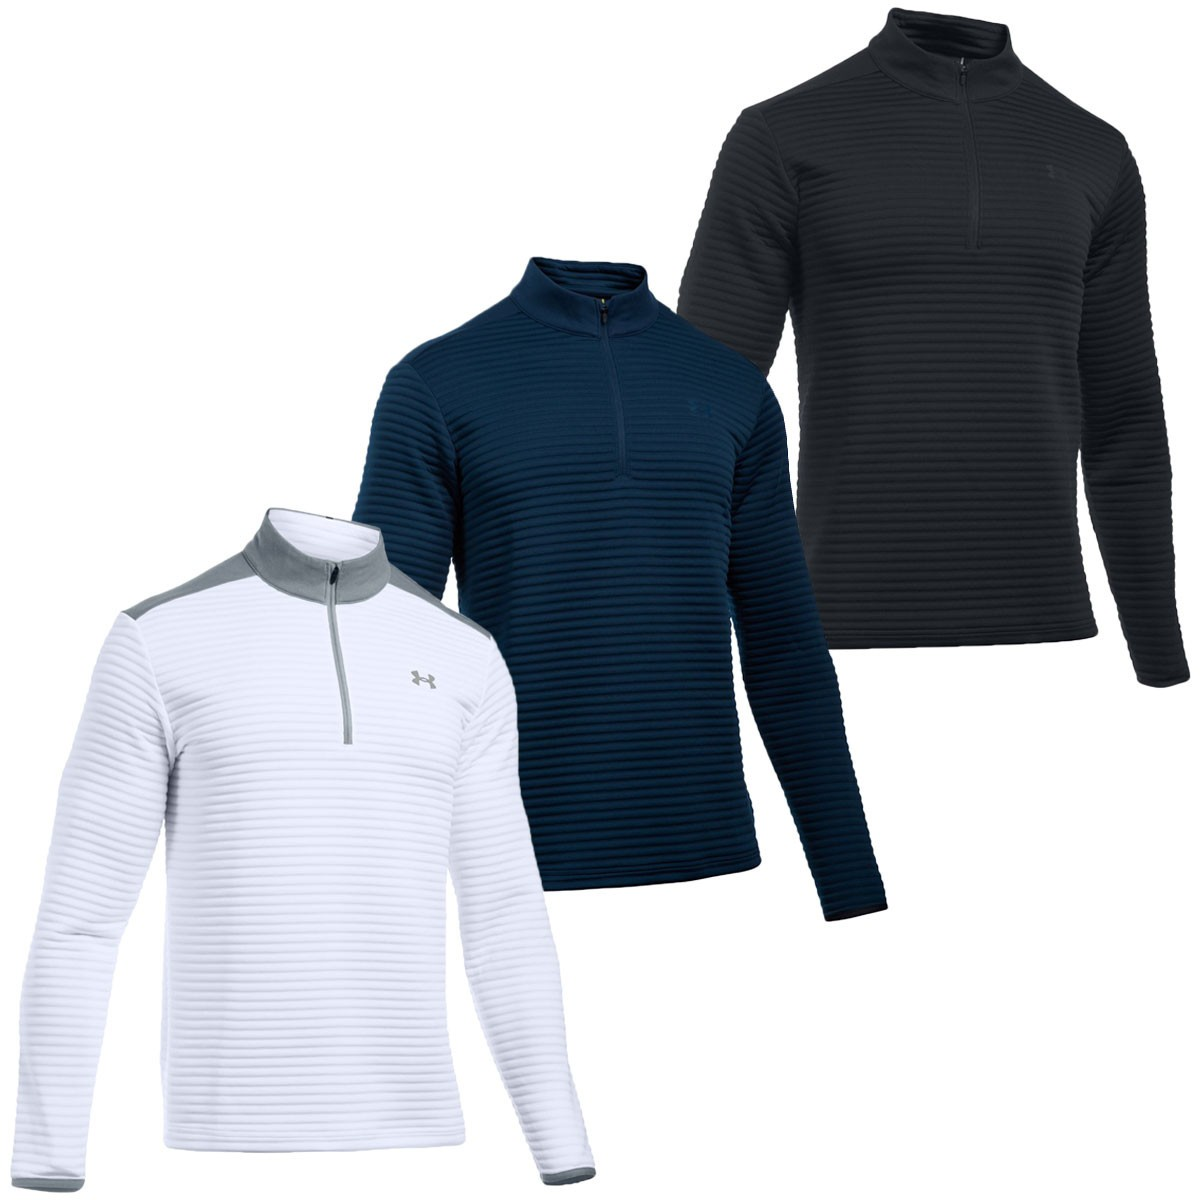 Under Armour Mens Tips Daytona 1/4 Zip Golf Pullover ...